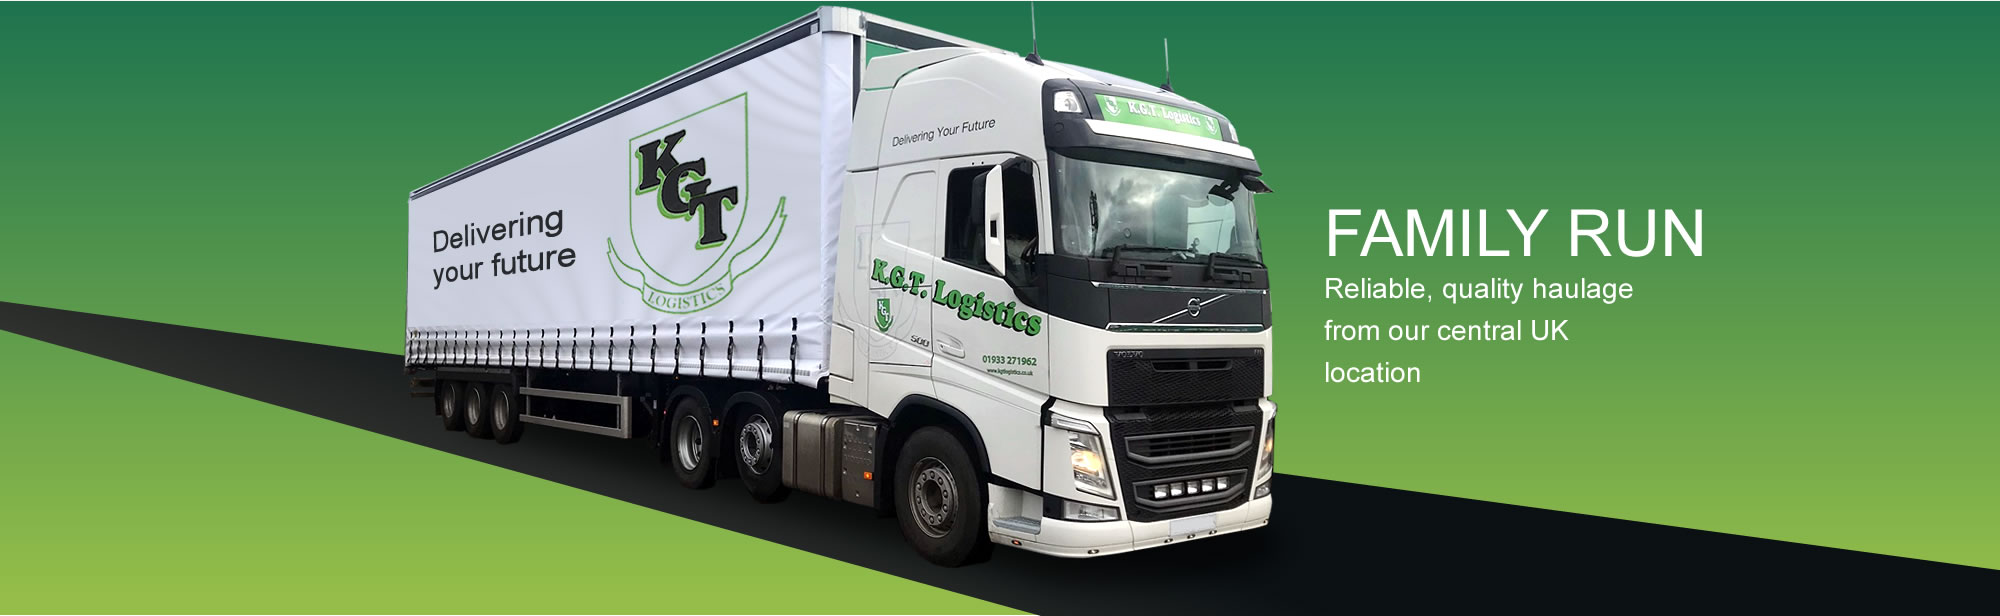 KGT Logistics Wellingborough